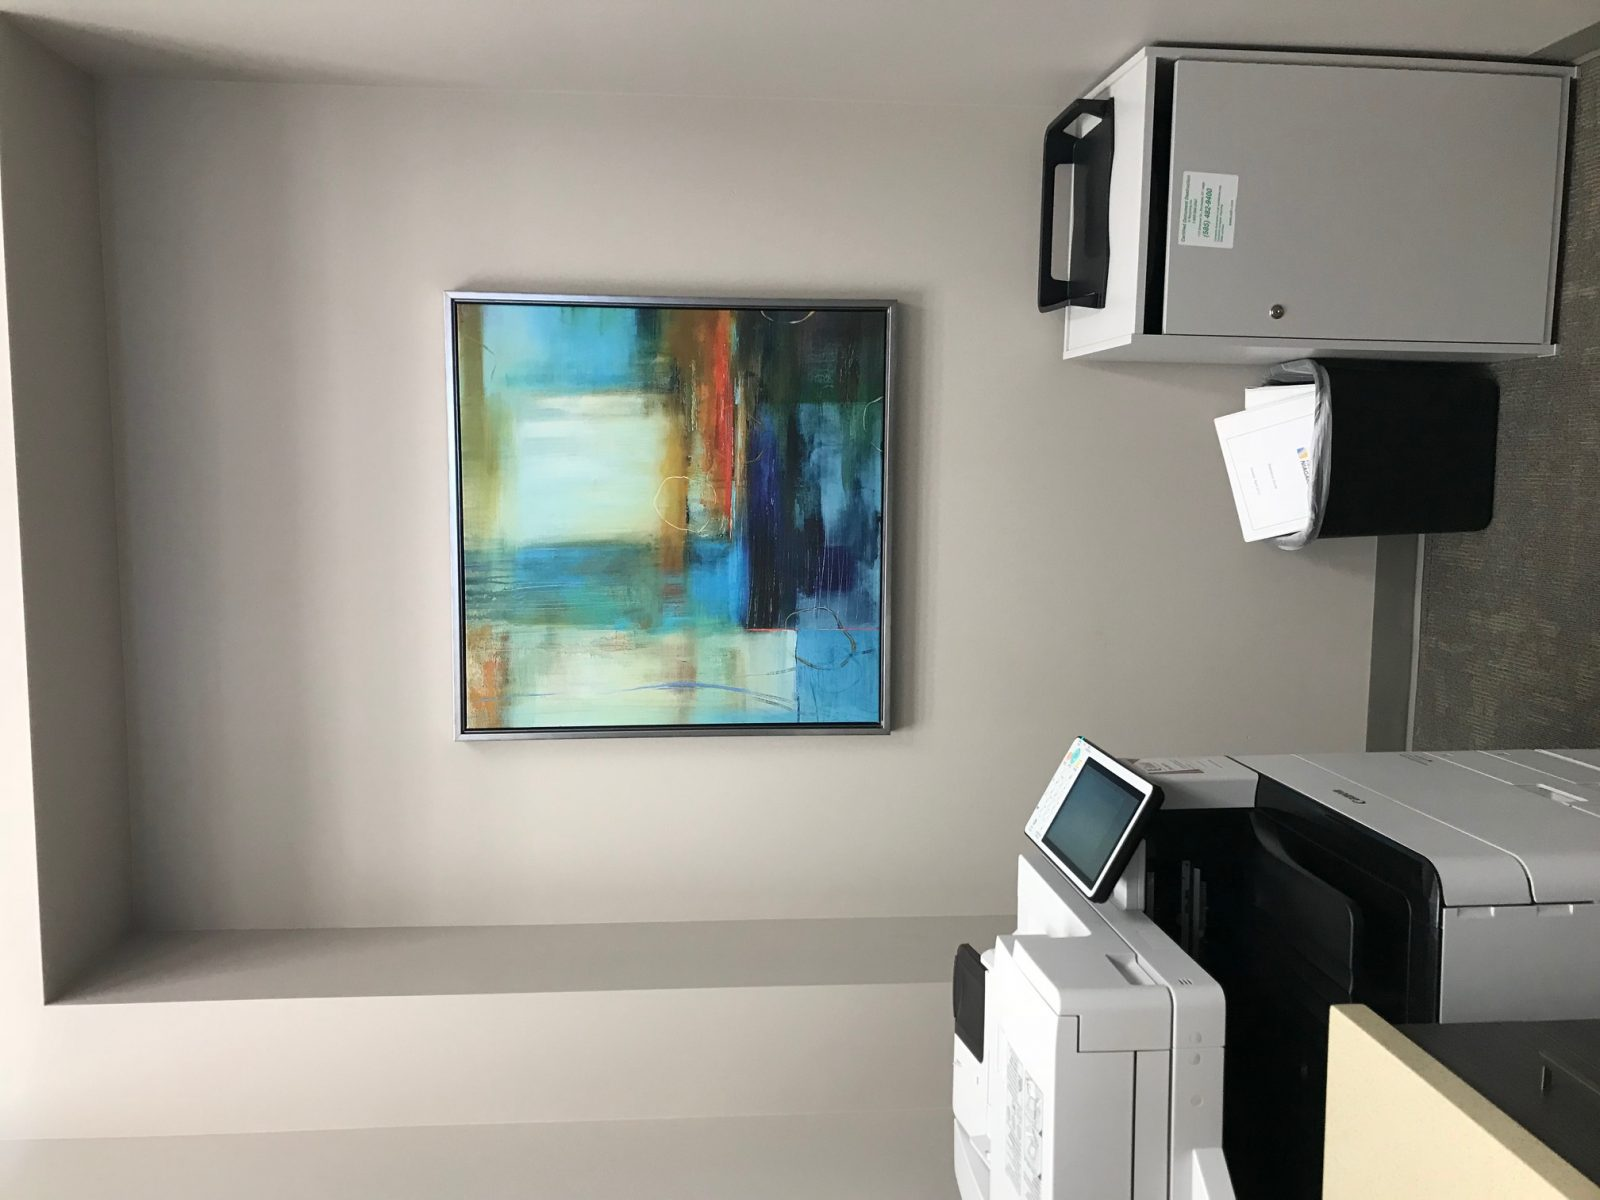 framed artwork in an office right by a copier machine